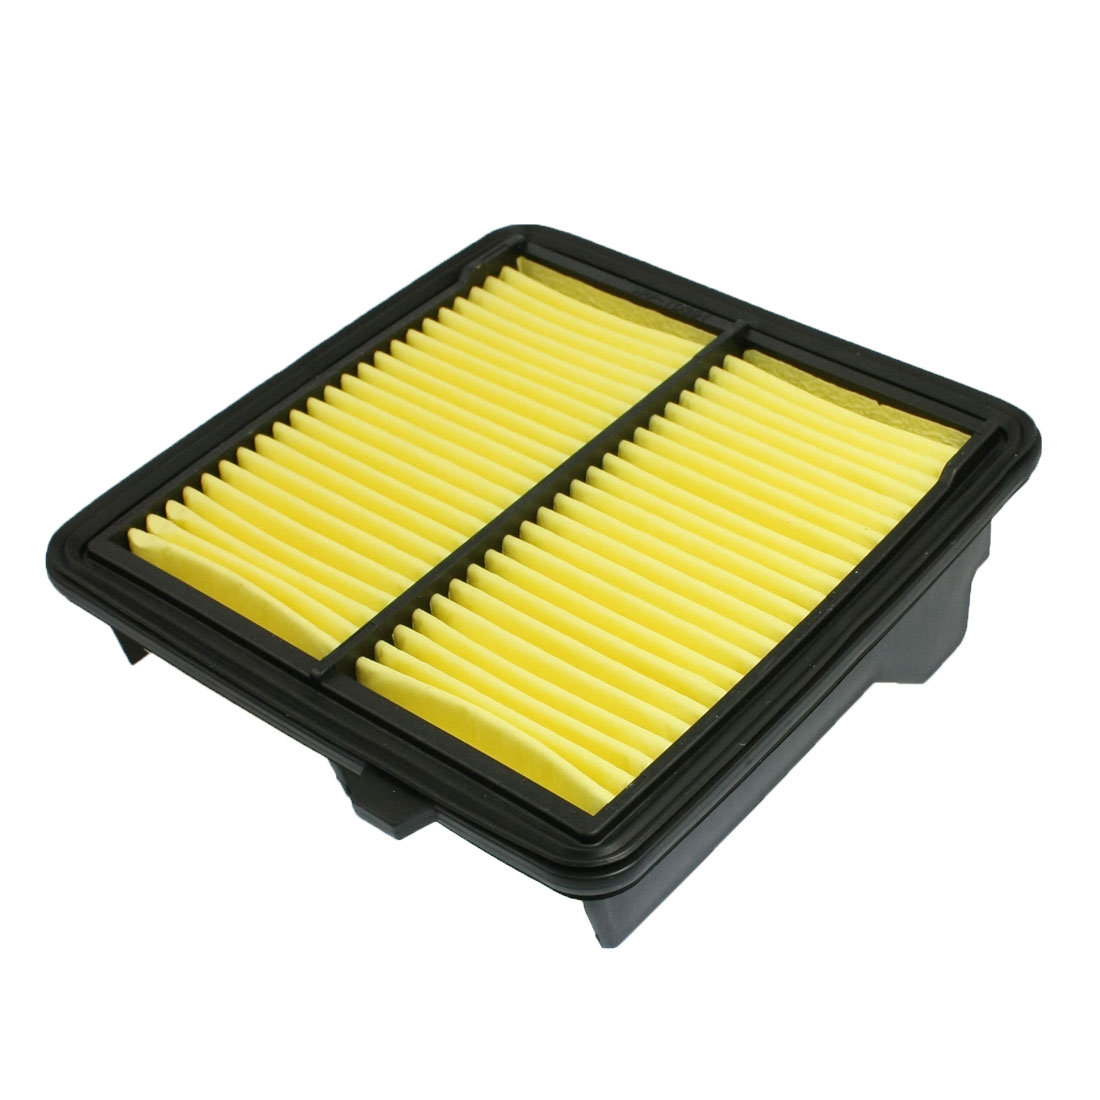 Auto Cars Vehicles Air Filter Cleaner Black Yellow